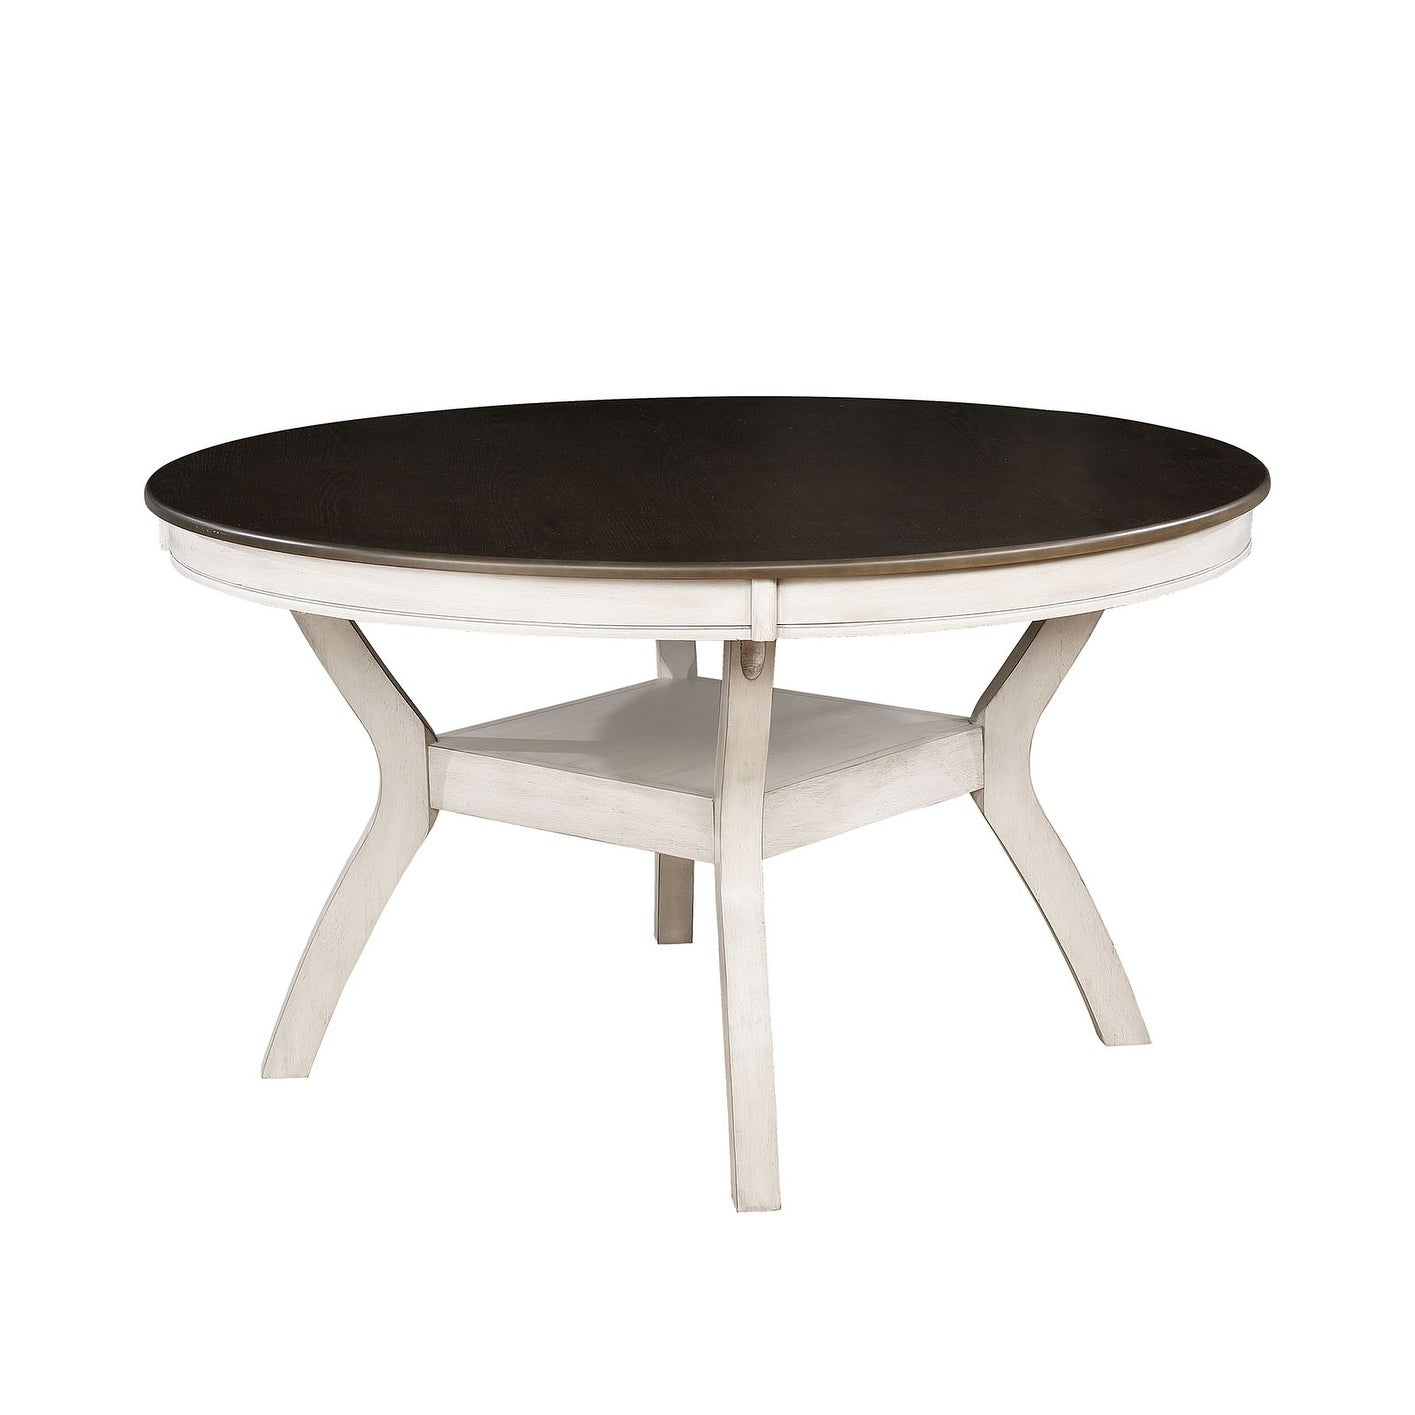 sports shoes 94499 ff4ea Transitional Style Solid Wood Round Dining Table with Turned Legs, White  and Brown